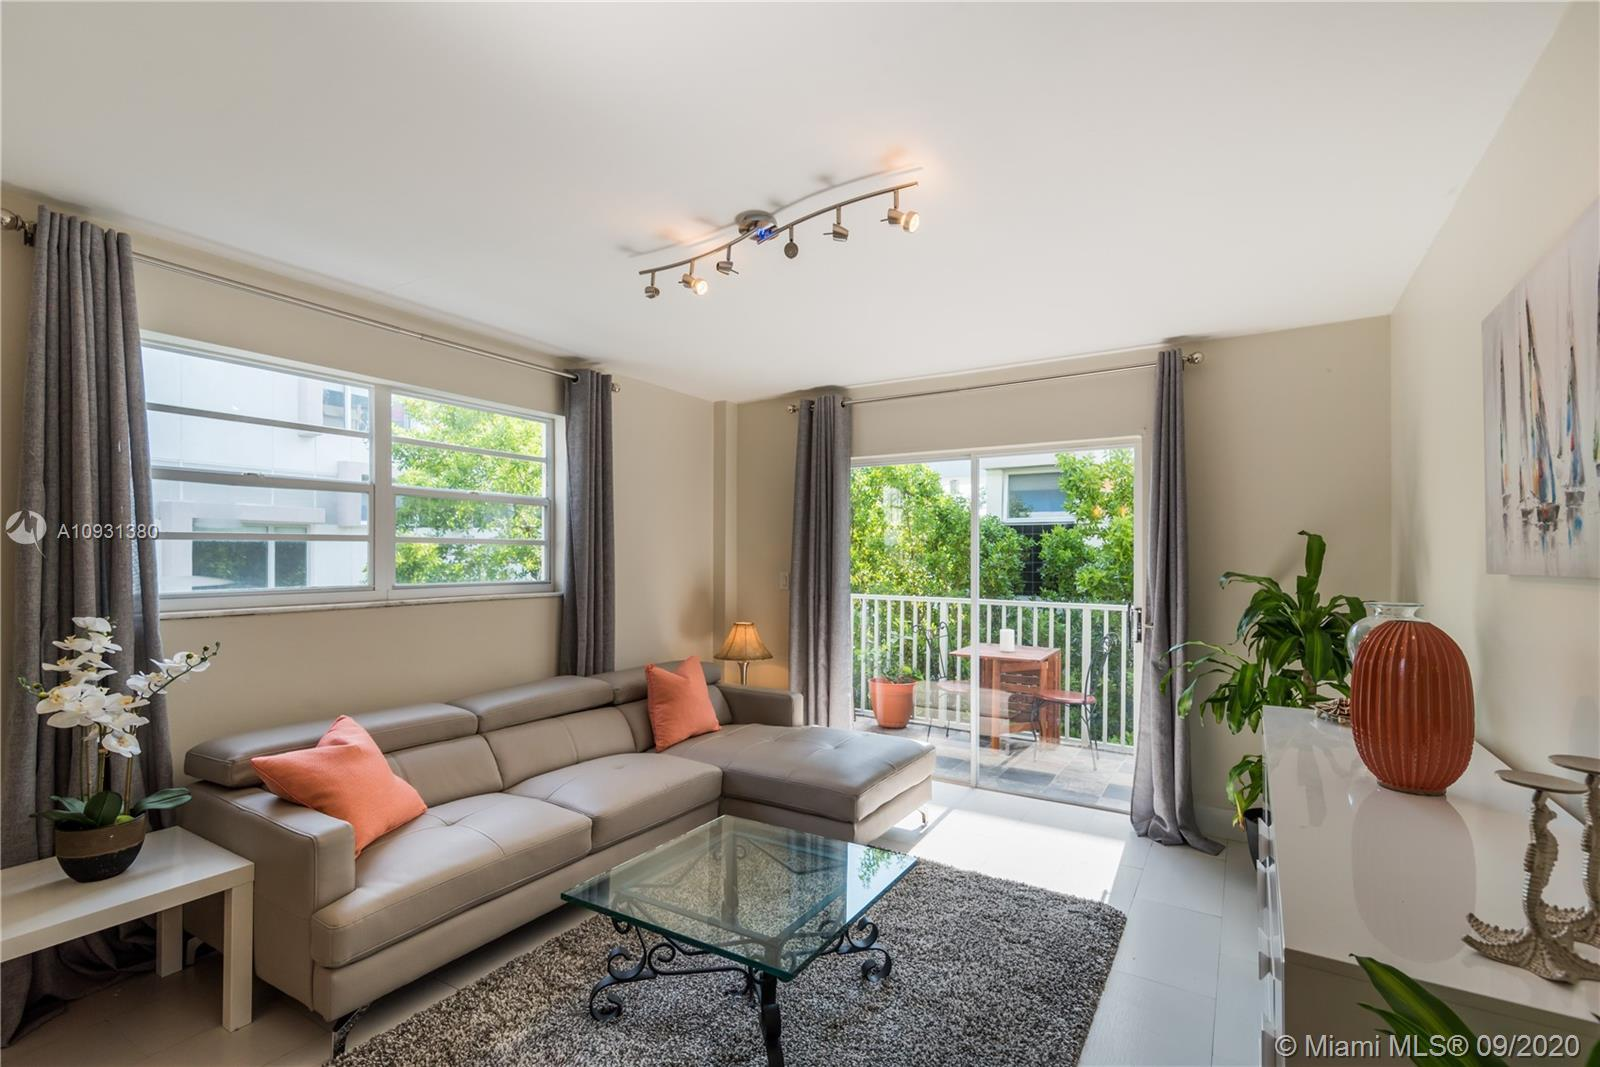 """Fully Renovated & Furnished one bedroom apartment located on desirable """"South of Fifth"""" neighborhood"""